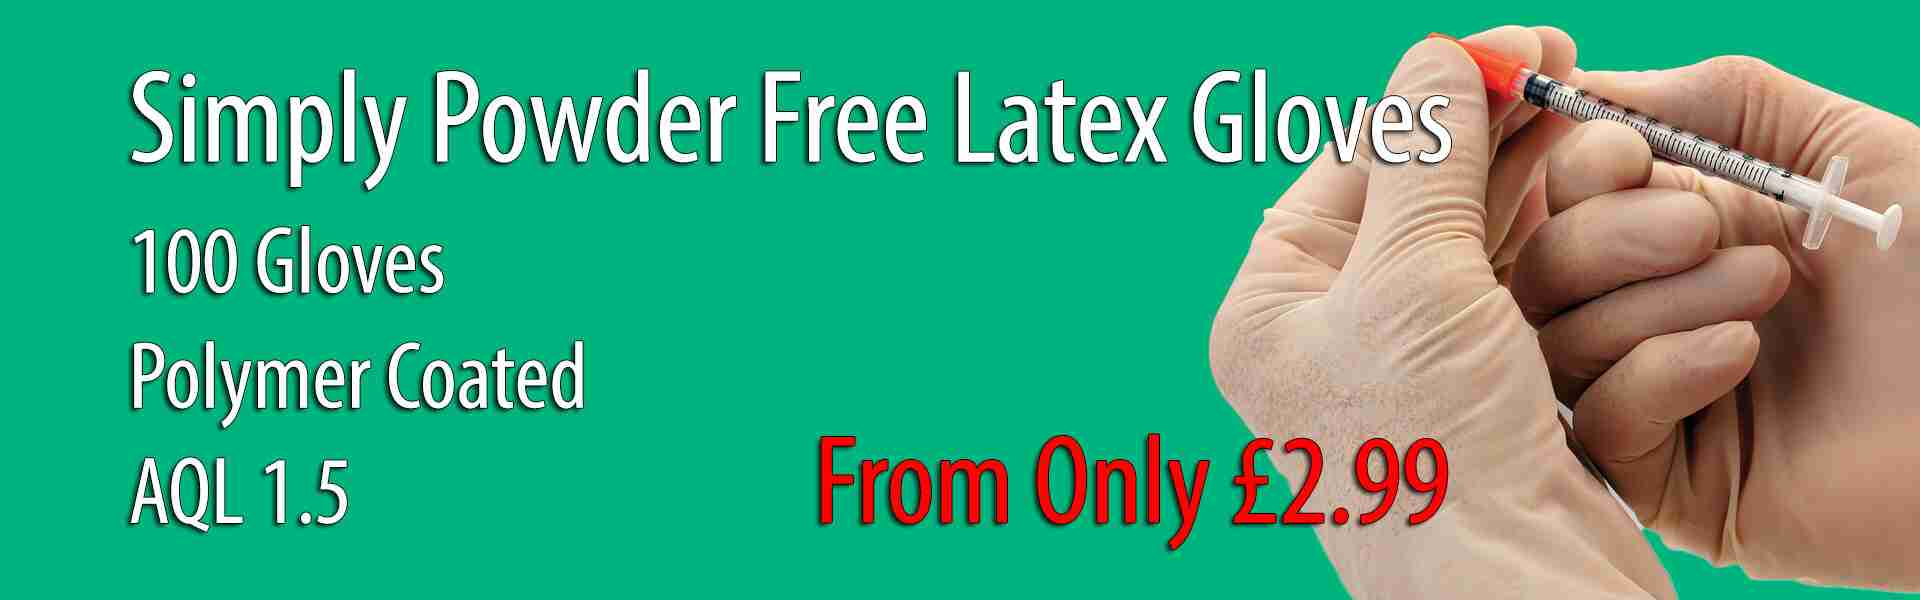 Simply Powder Free Latex Gloves